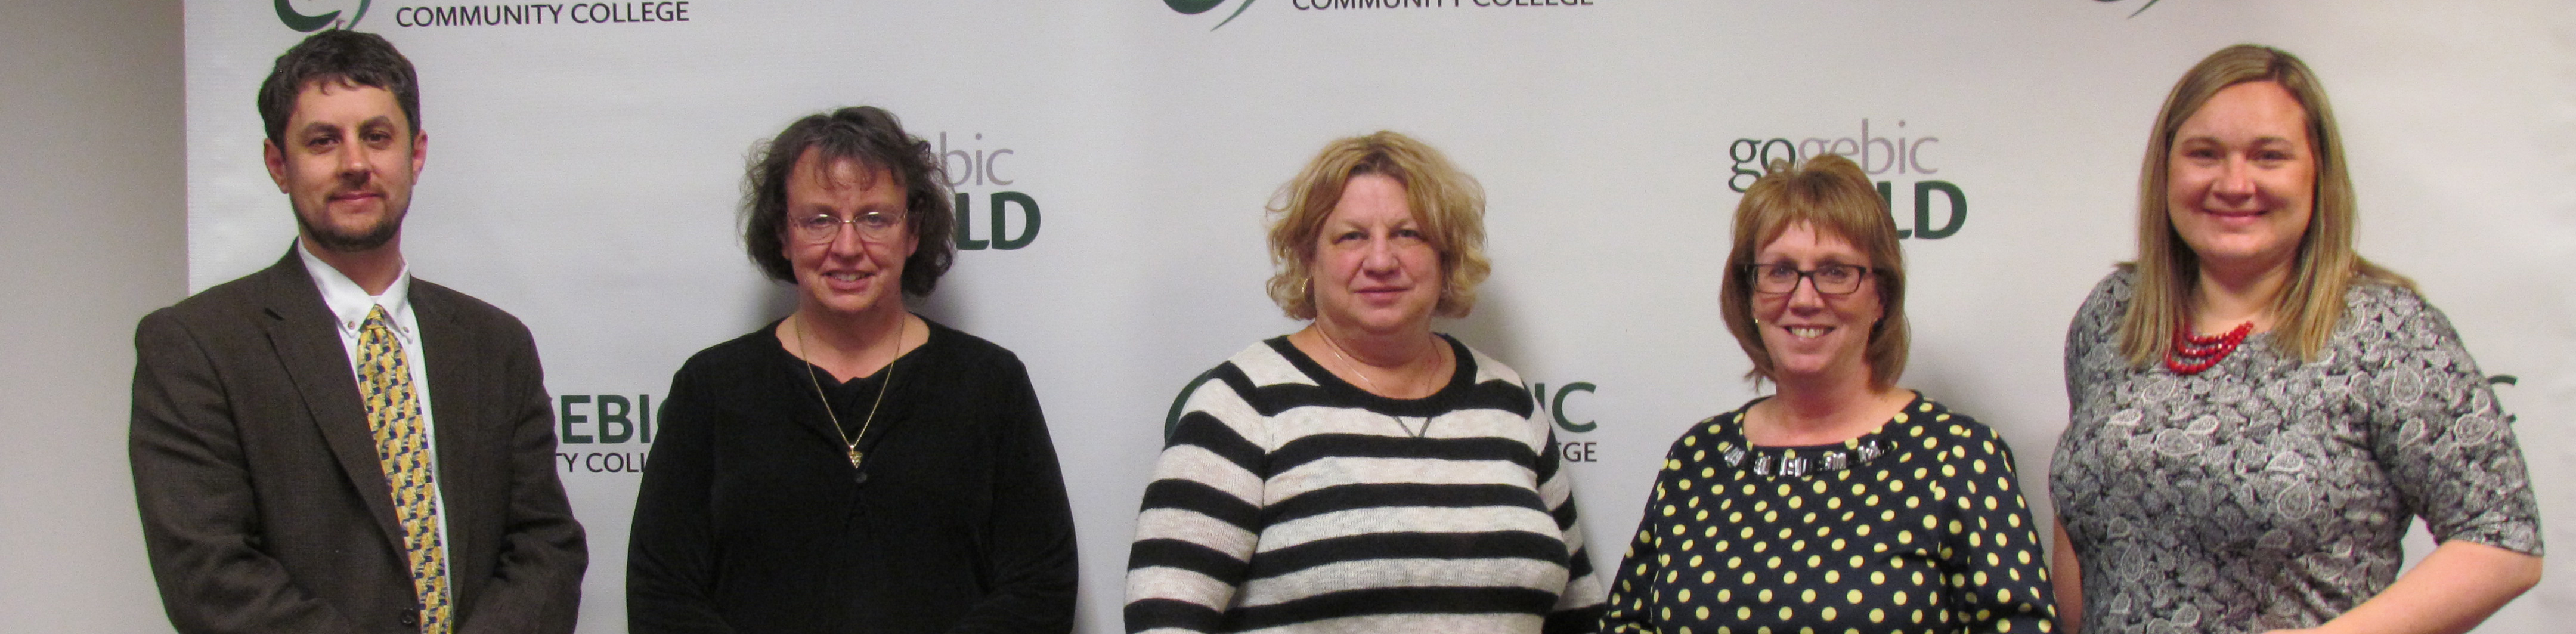 staff at Gogebic Community College